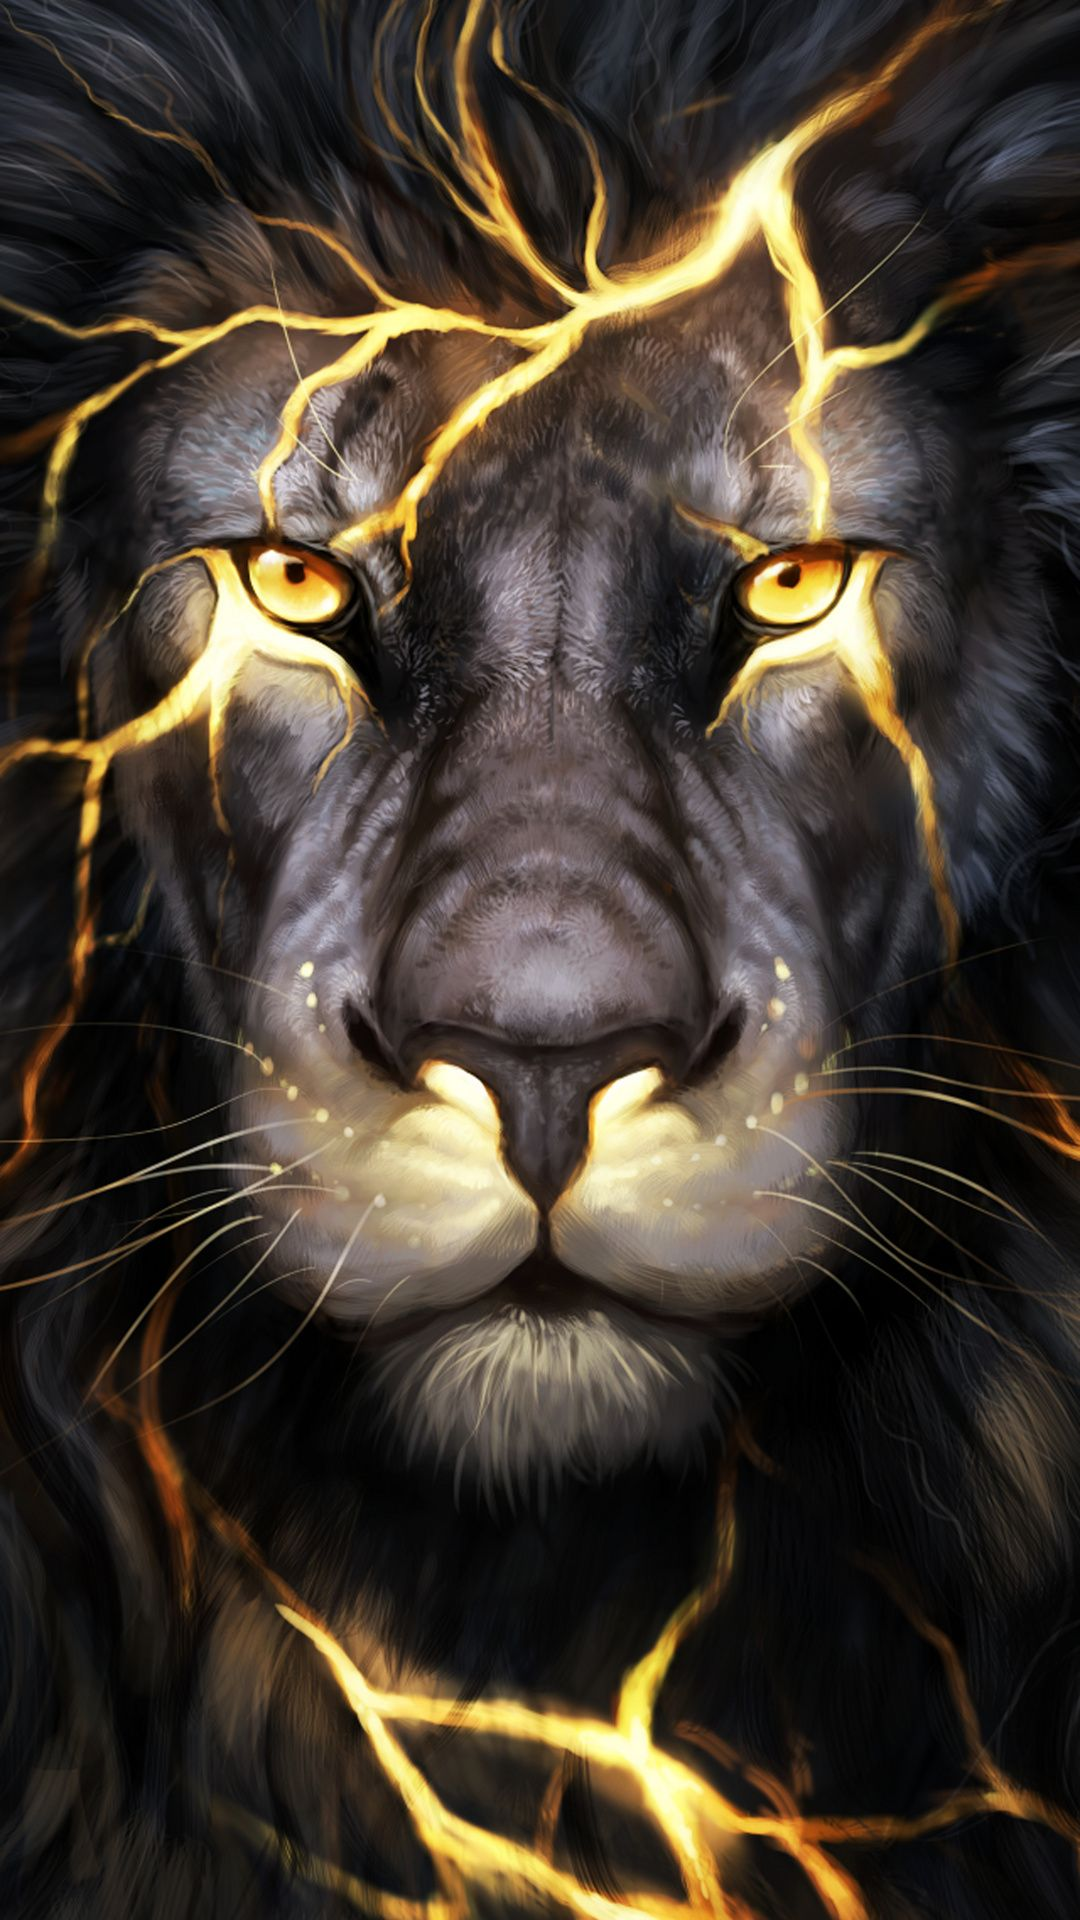 Just a cool 3D Lion graphic in 2020 Lion wallpaper, Lion